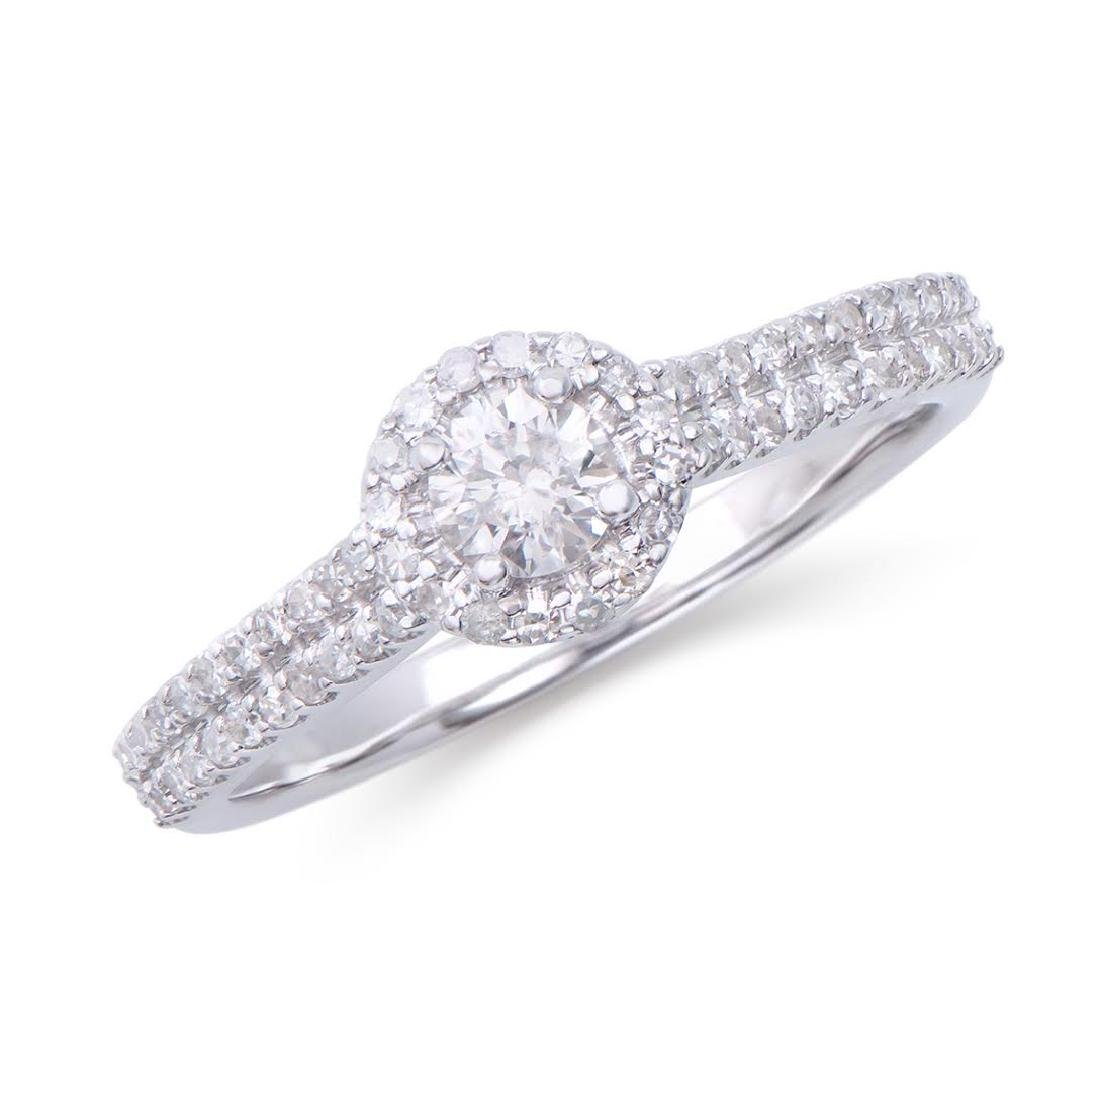 0.551 Cts Certified Diamond 14K Designer Engagement